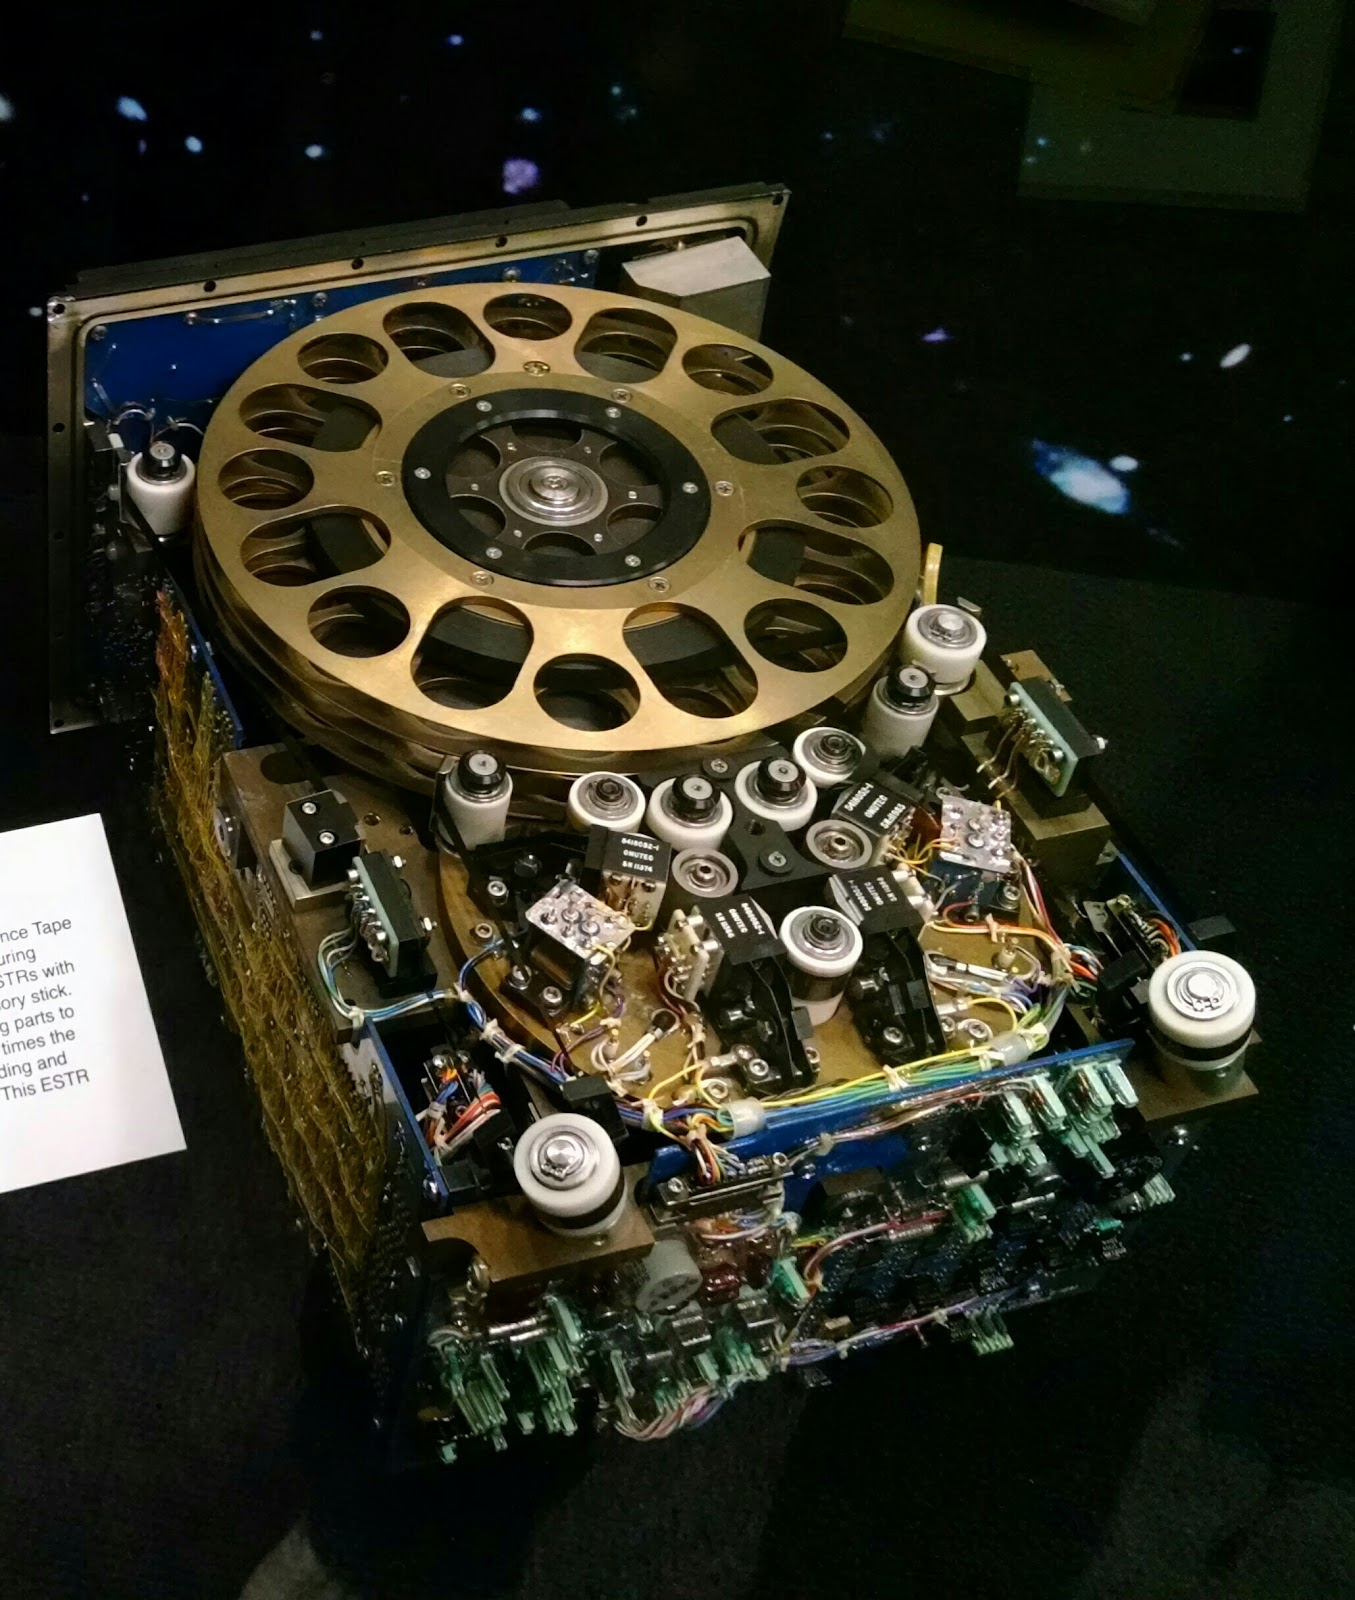 Image of an old reel-to-reel tape recorder on display at NASA Goddard.